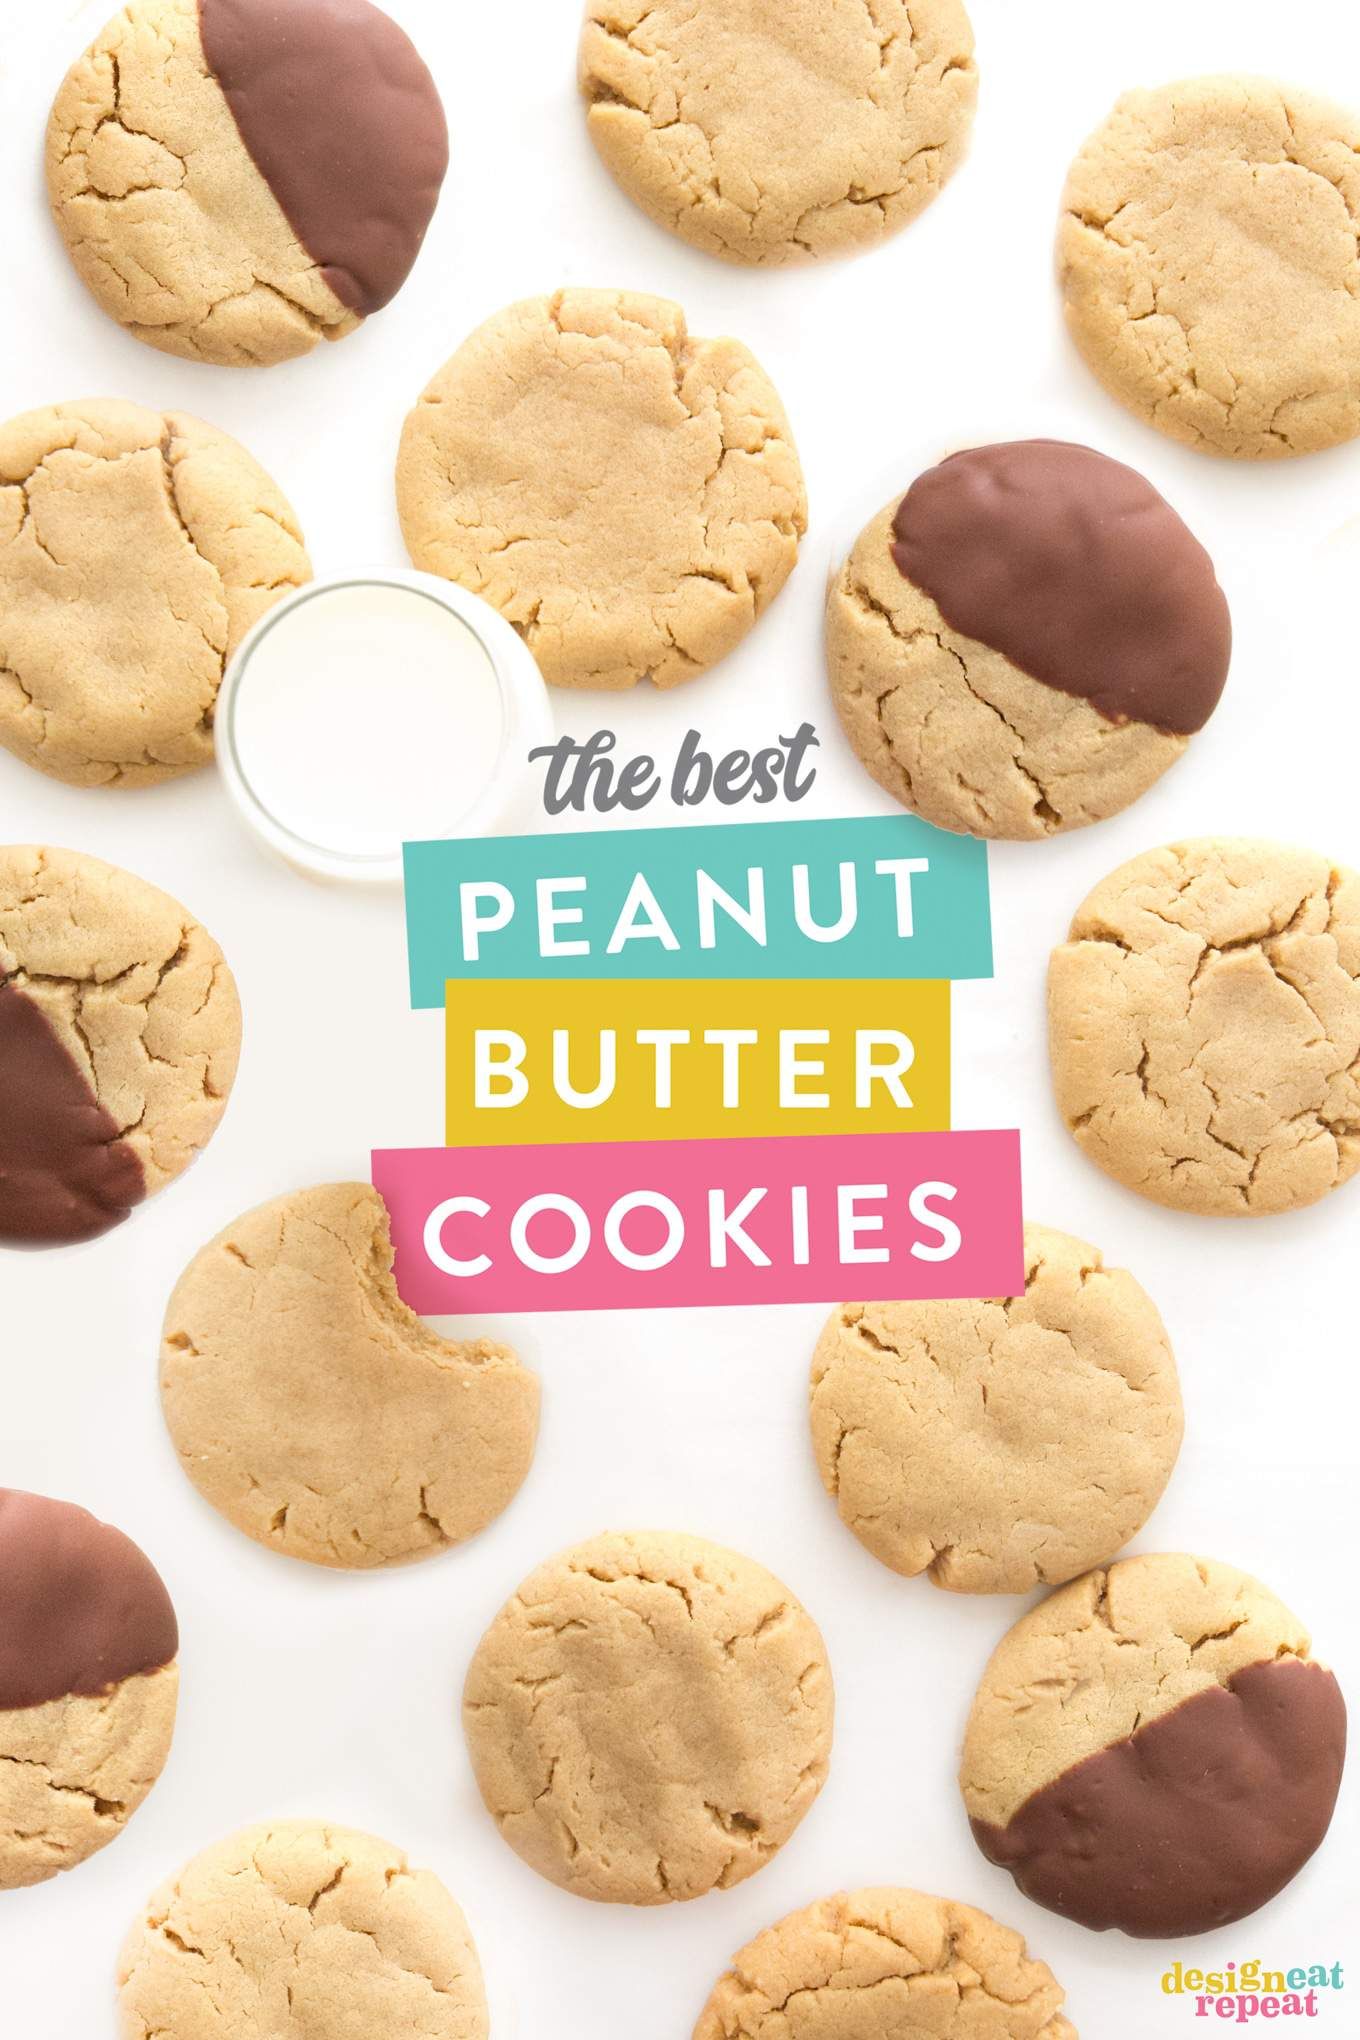 The best peanut butter cookies - perfectly soft, thick, moist, chewy, and delicious!